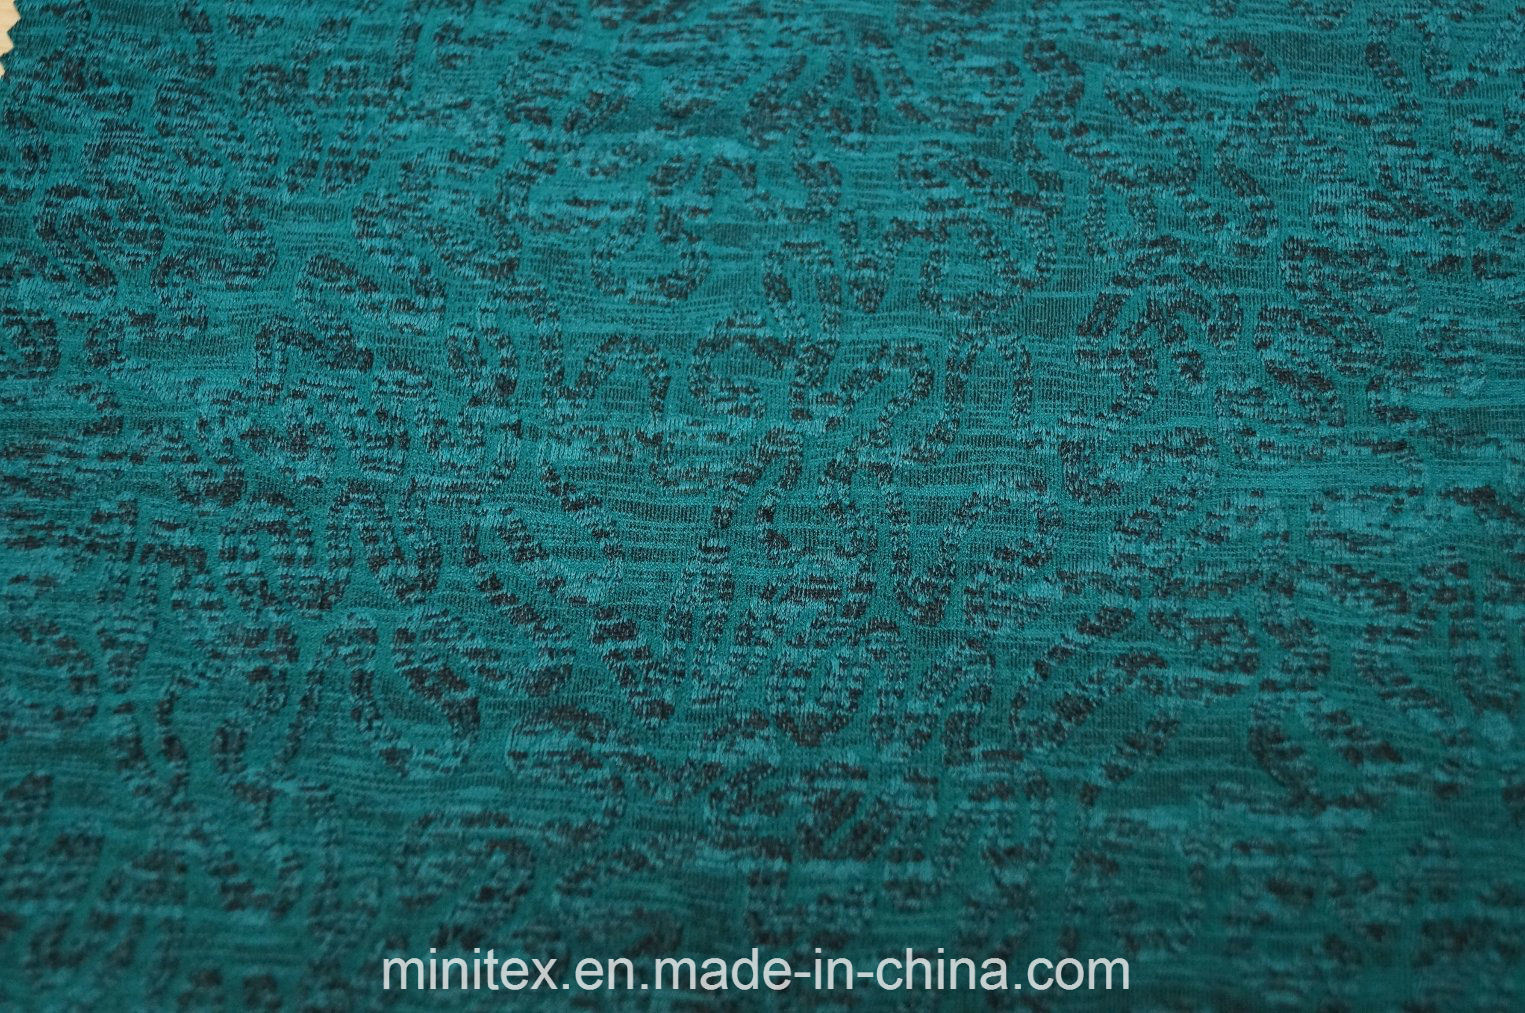 59832b47dea China Lmn979 Nylon Polyester Spandex Blended Yarn Dyed Jacquard Bubble  Seersucker Crinkle Weft Knitted Elastic Stretch Fabric - China Fabric,  Jacquard